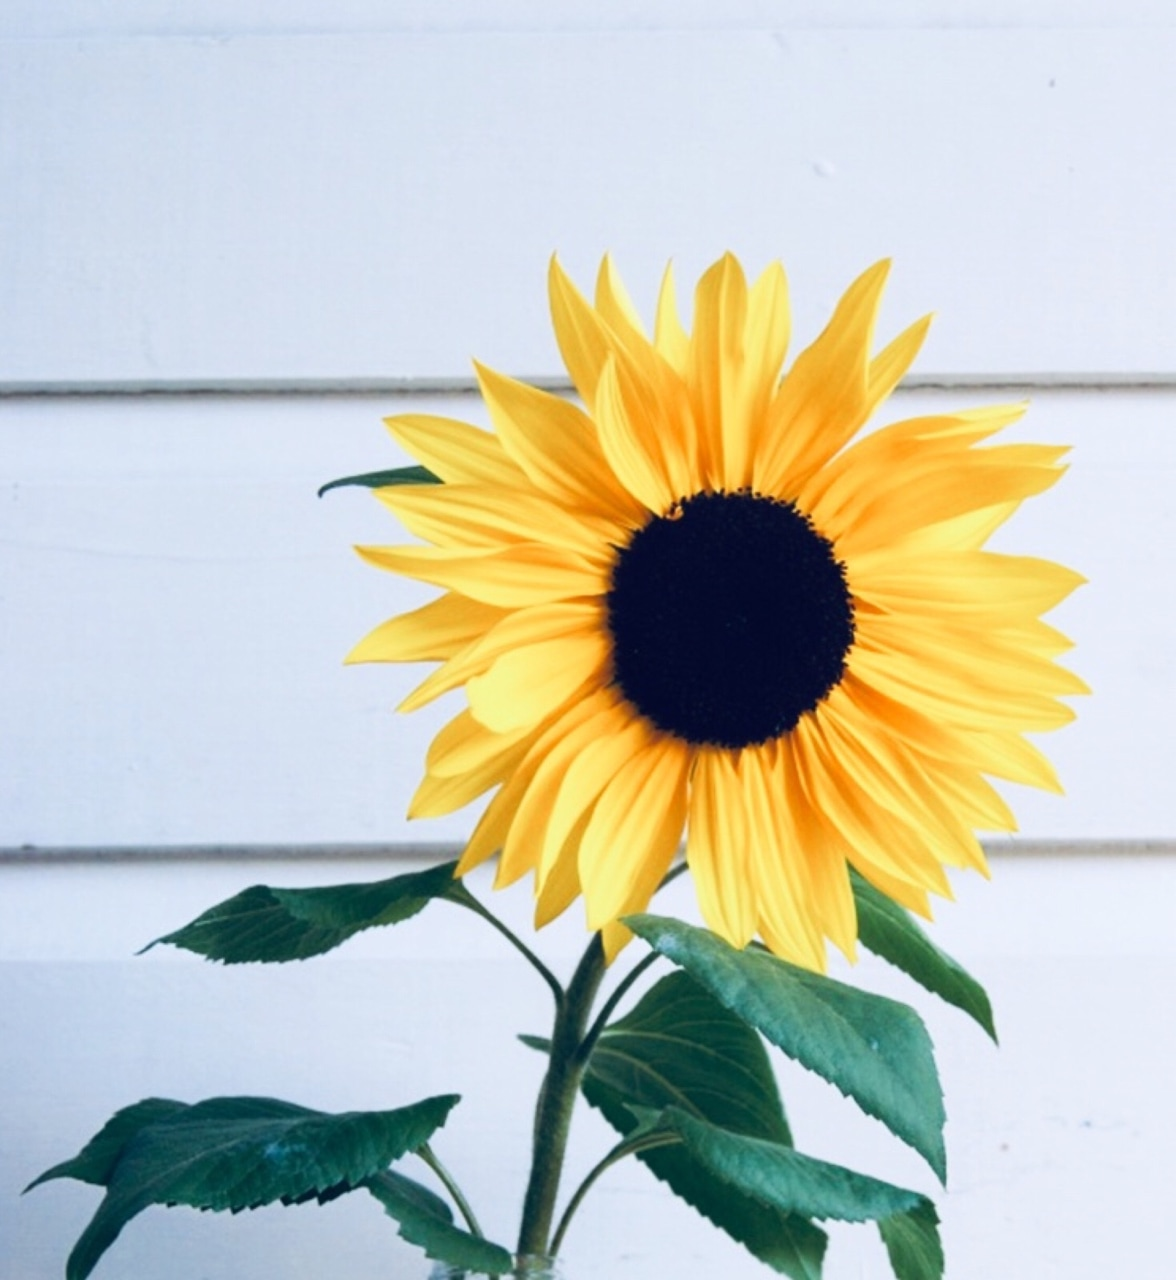 Aesthetic Sunflower Pictures - Largest Wallpaper Portal